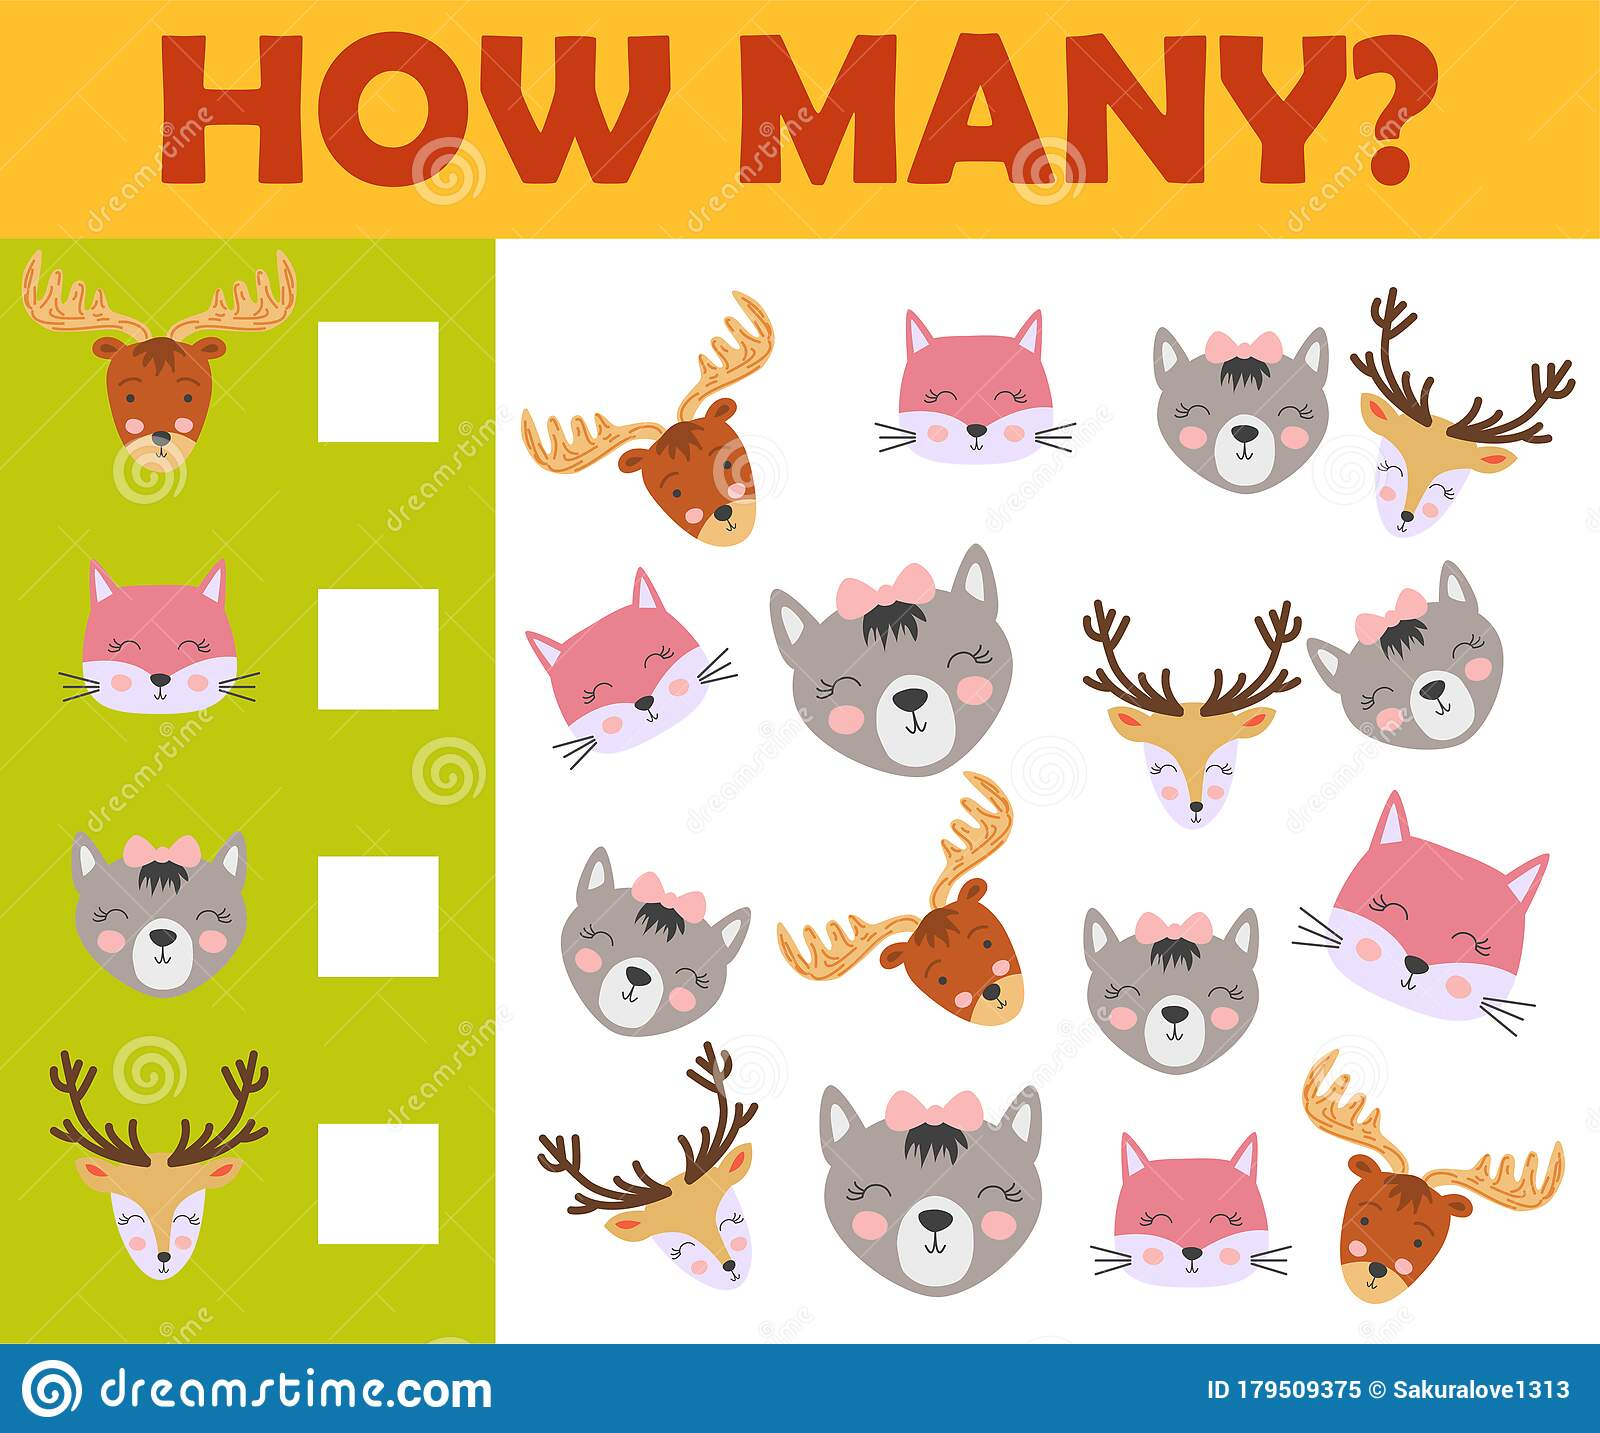 Counting Animal Games For Preschool Kids Sheet Layout In